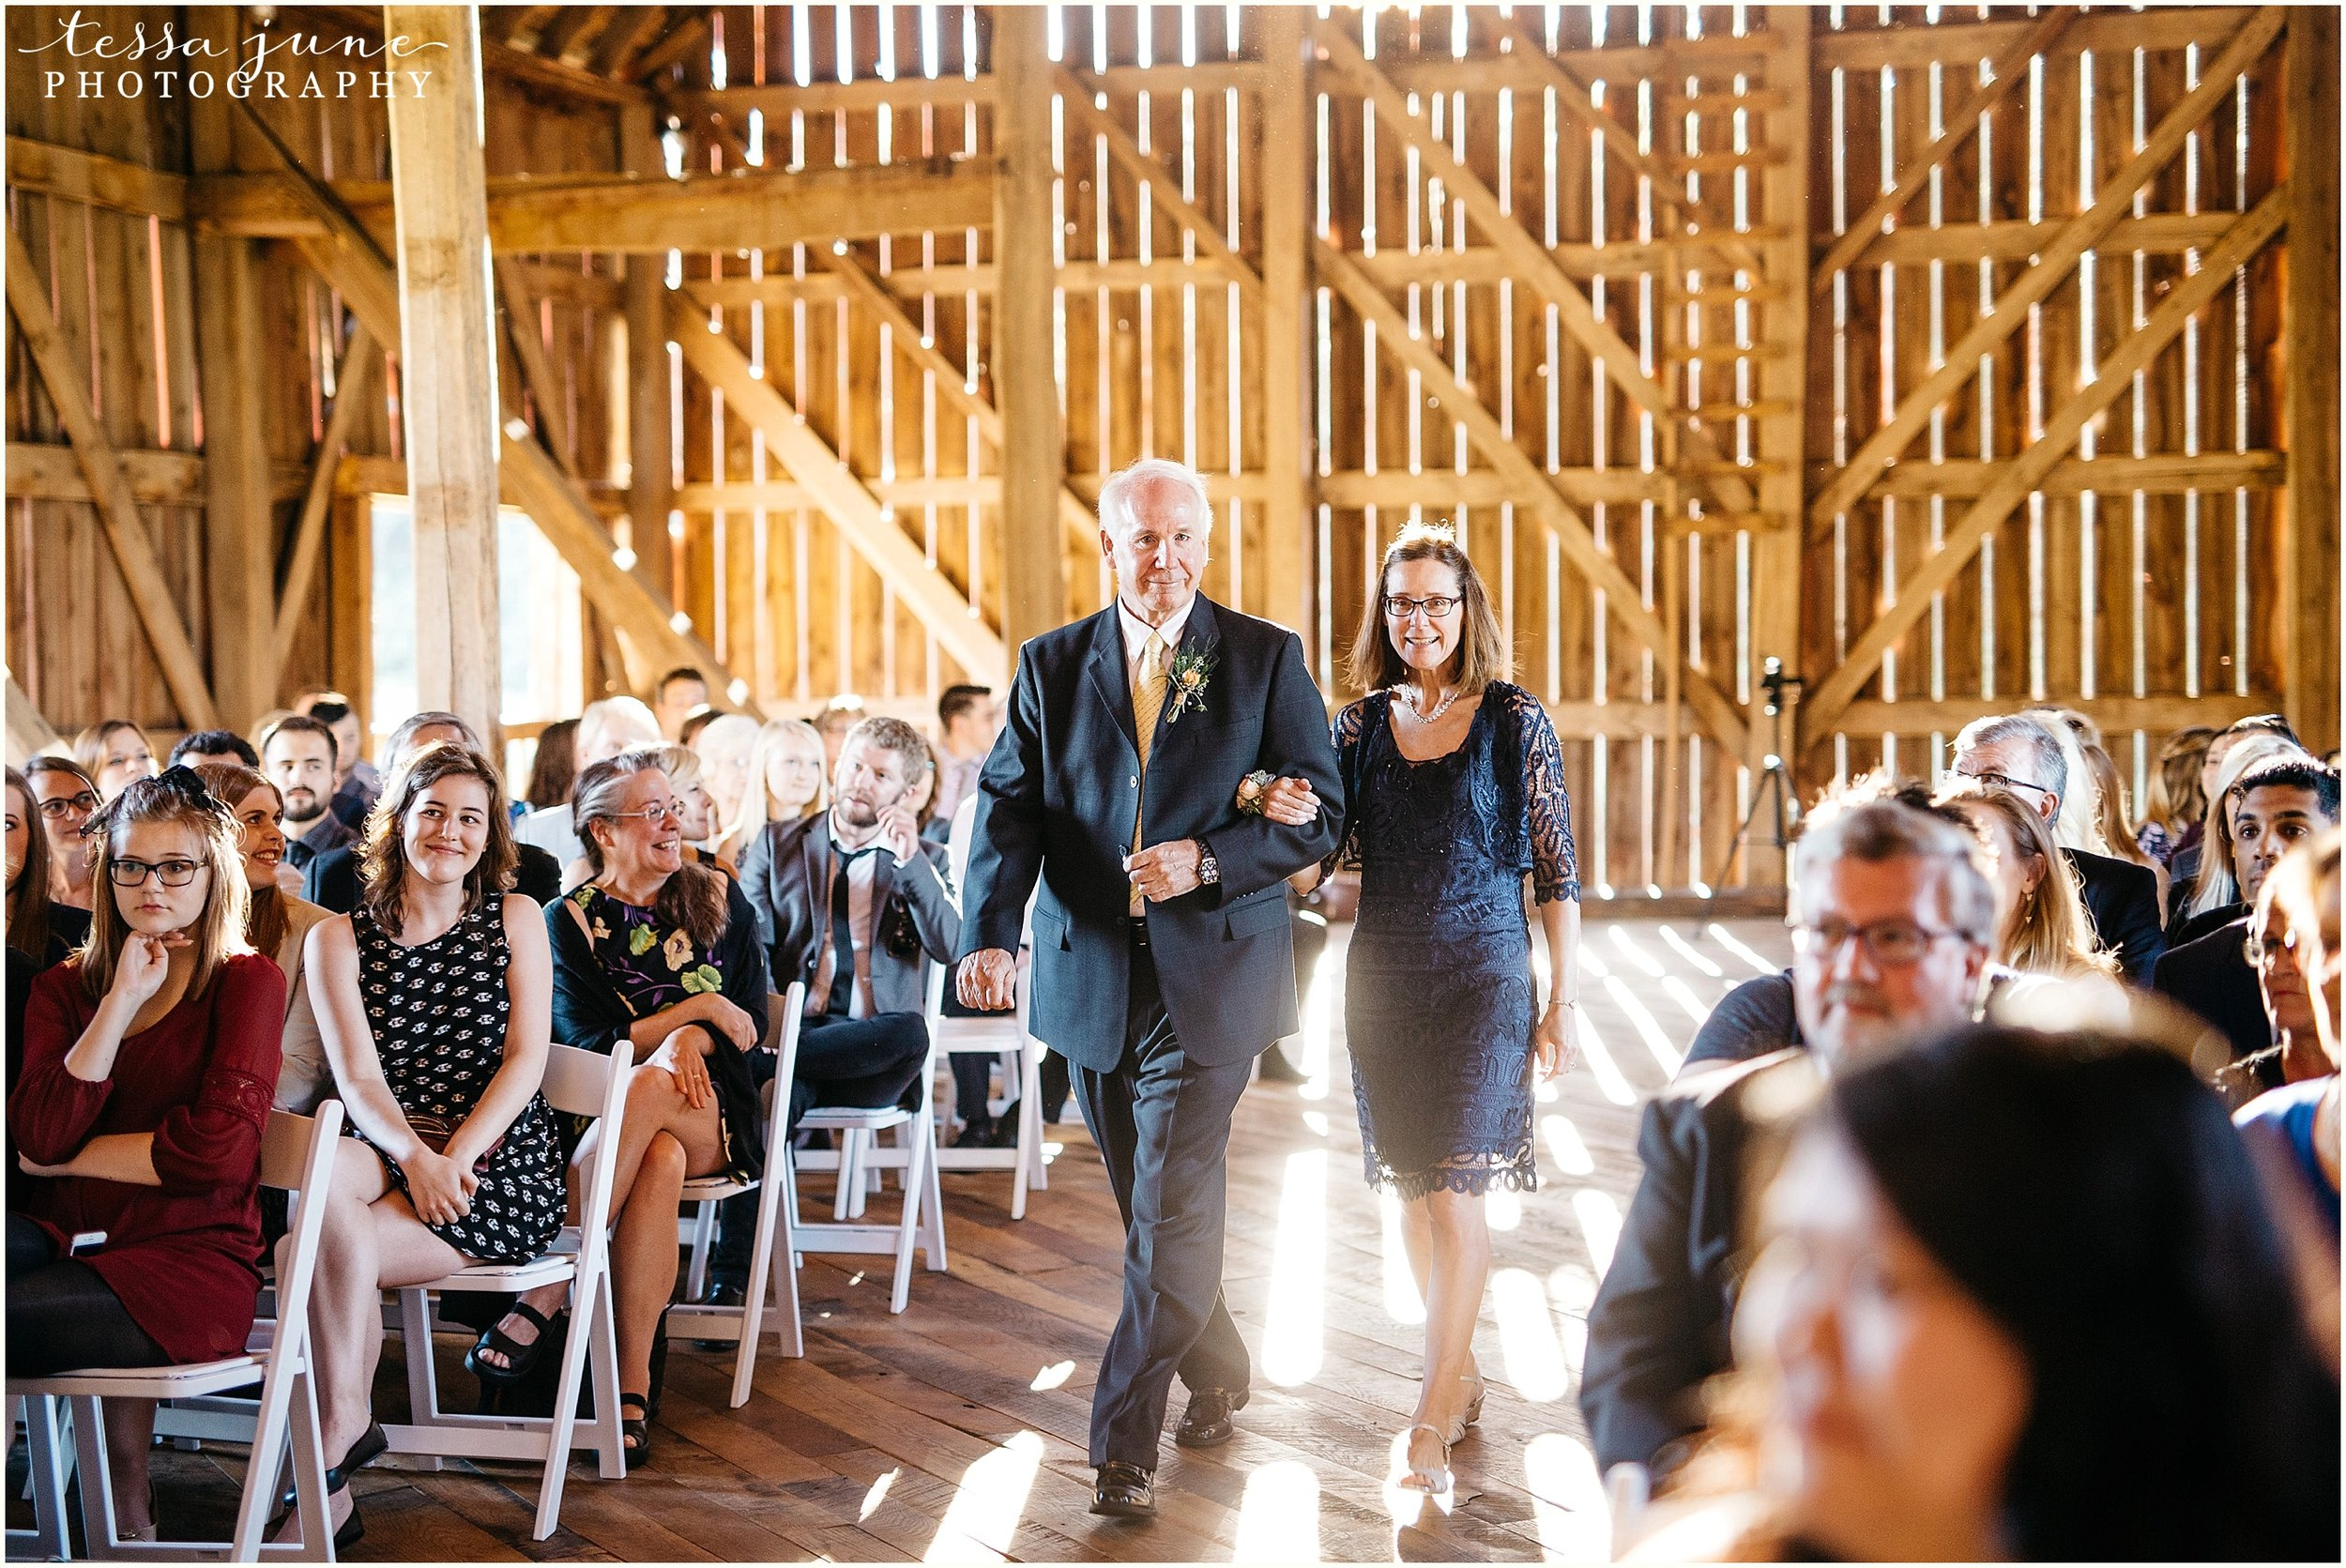 birch-hill-barn-glenwood-city-wisconsin-st-cloud-wedding-photographer-4426.jpg